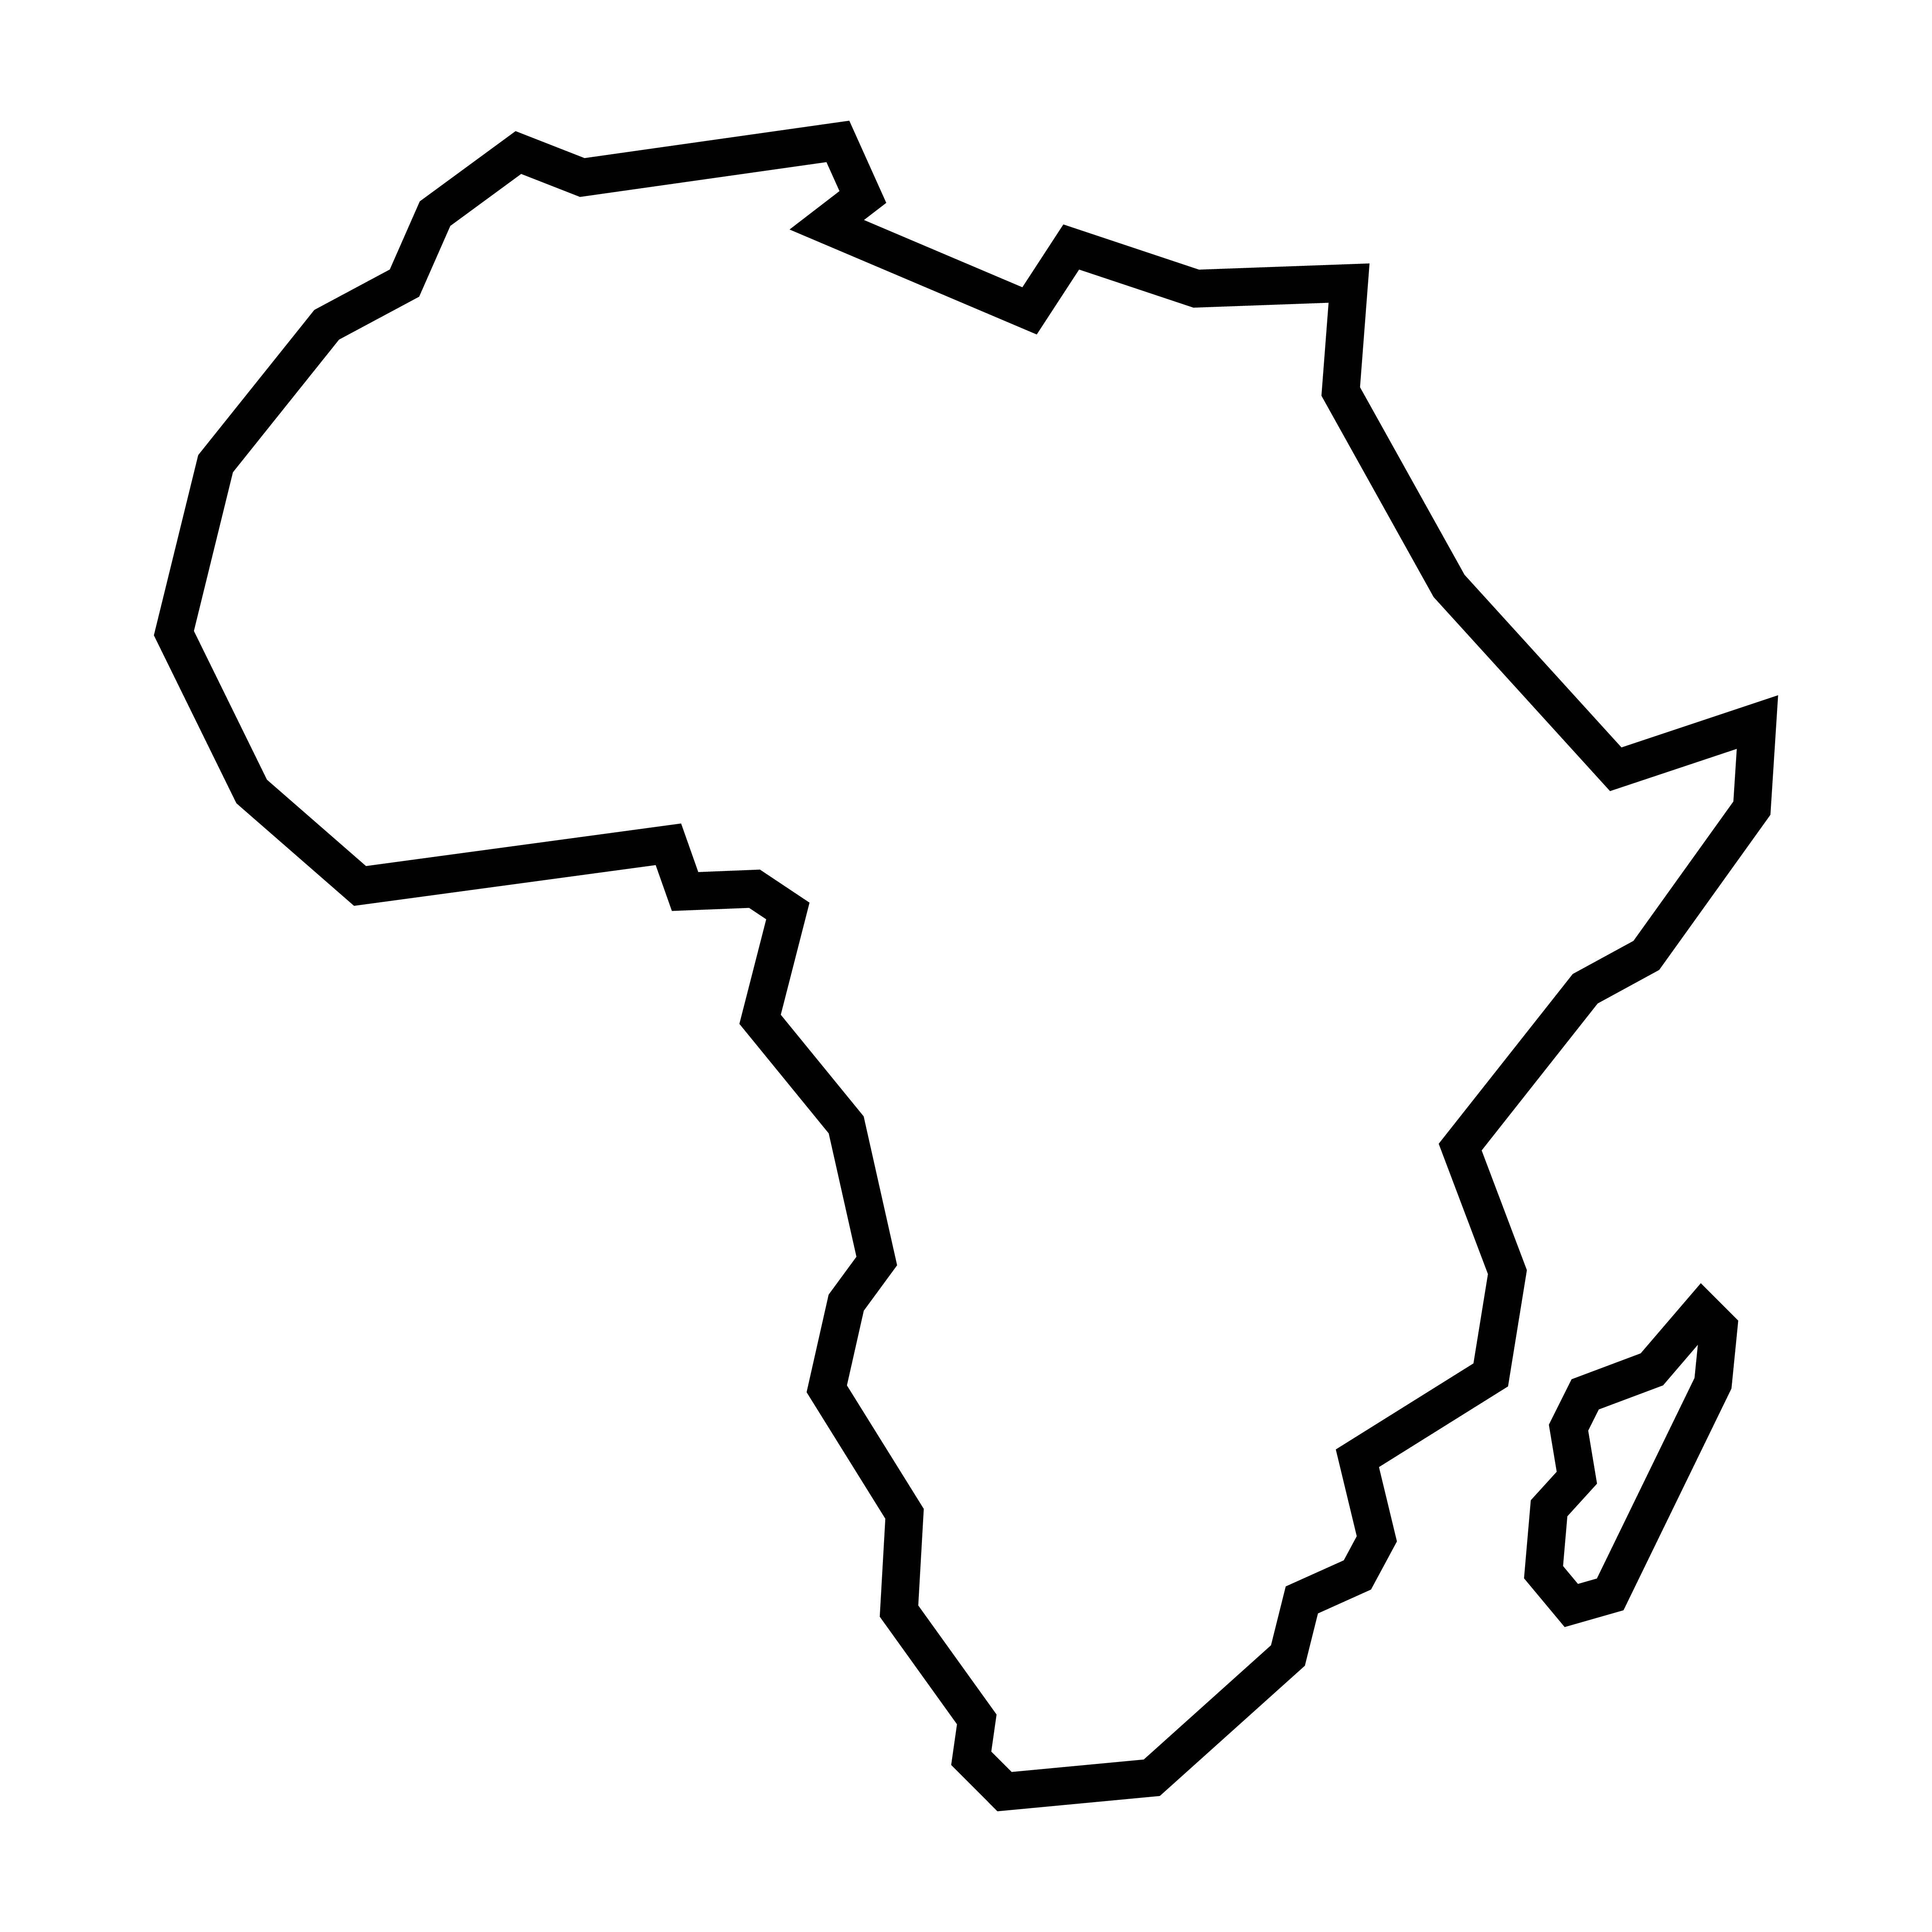 Africa Map Silhouette Vector.Africa Continent Outline Free Vector Art 17 Free Downloads